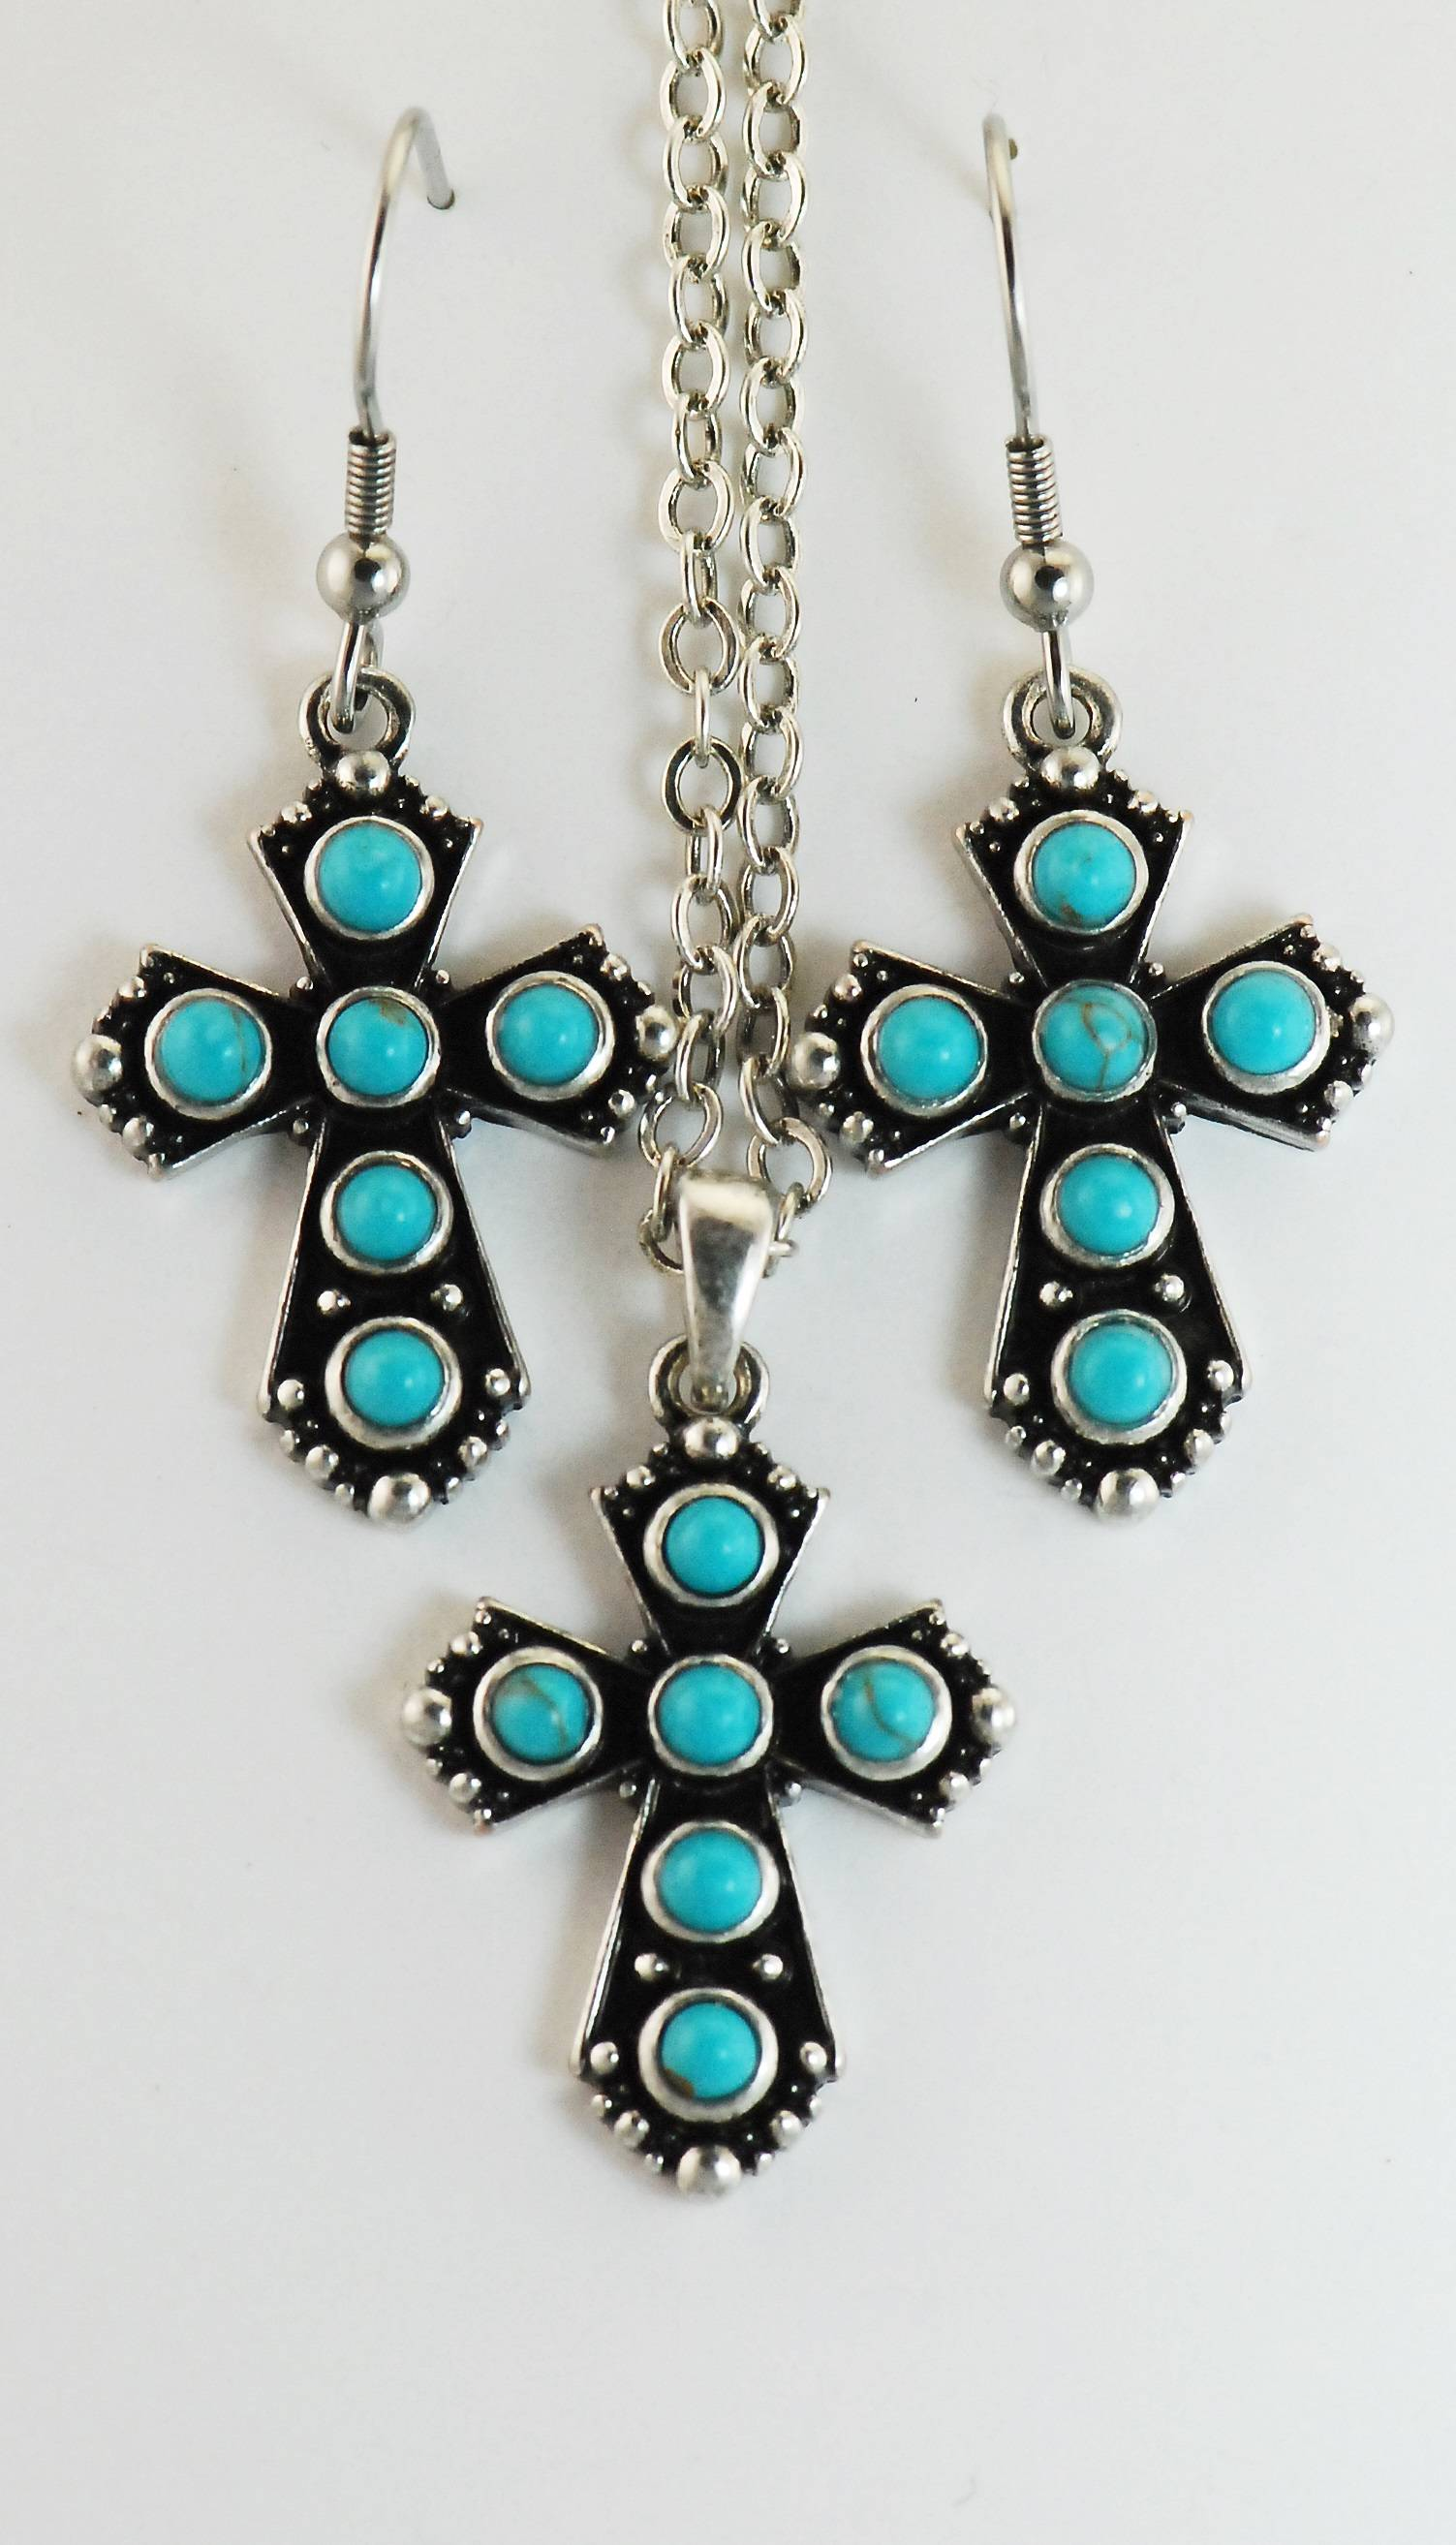 Western Edge Imitation Stone Cross Dangle Earrings Necklace Set